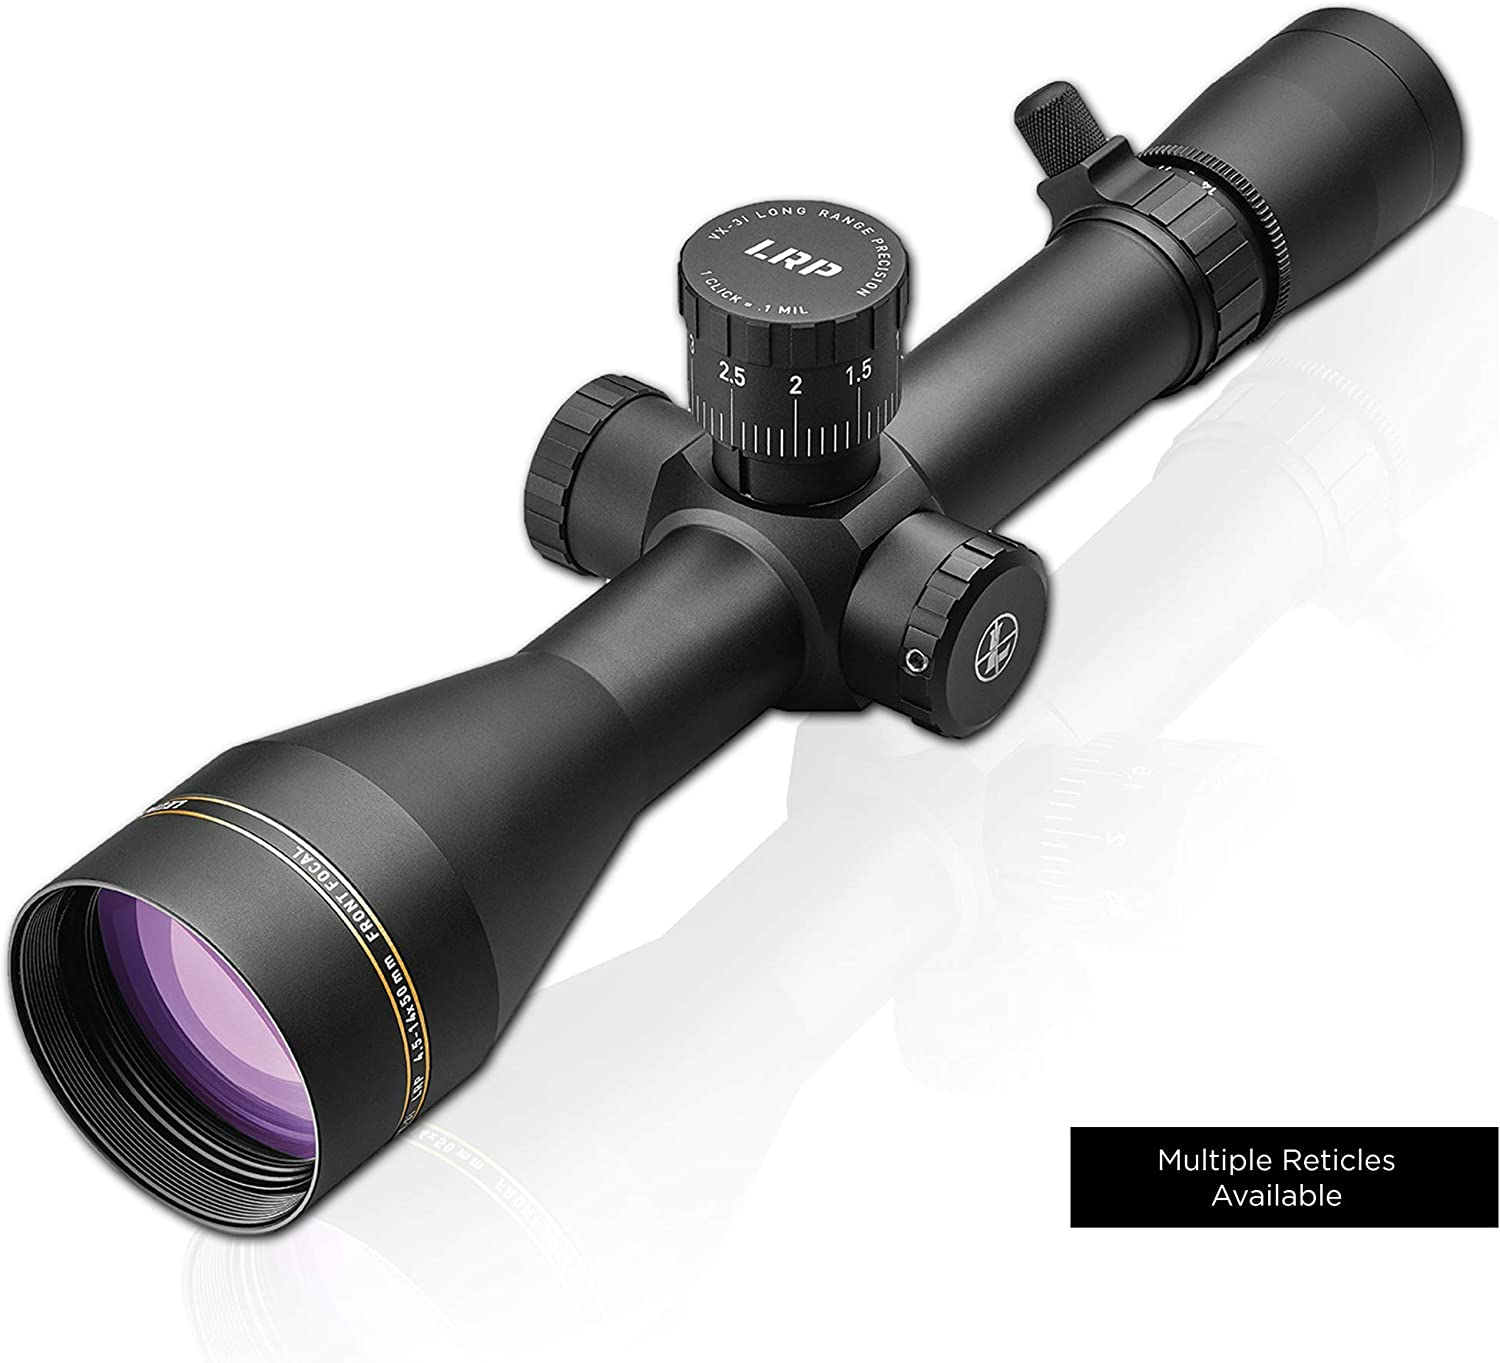 Leupold VX-3i LRP 4.5-14x50mm Side Focus Riflescope